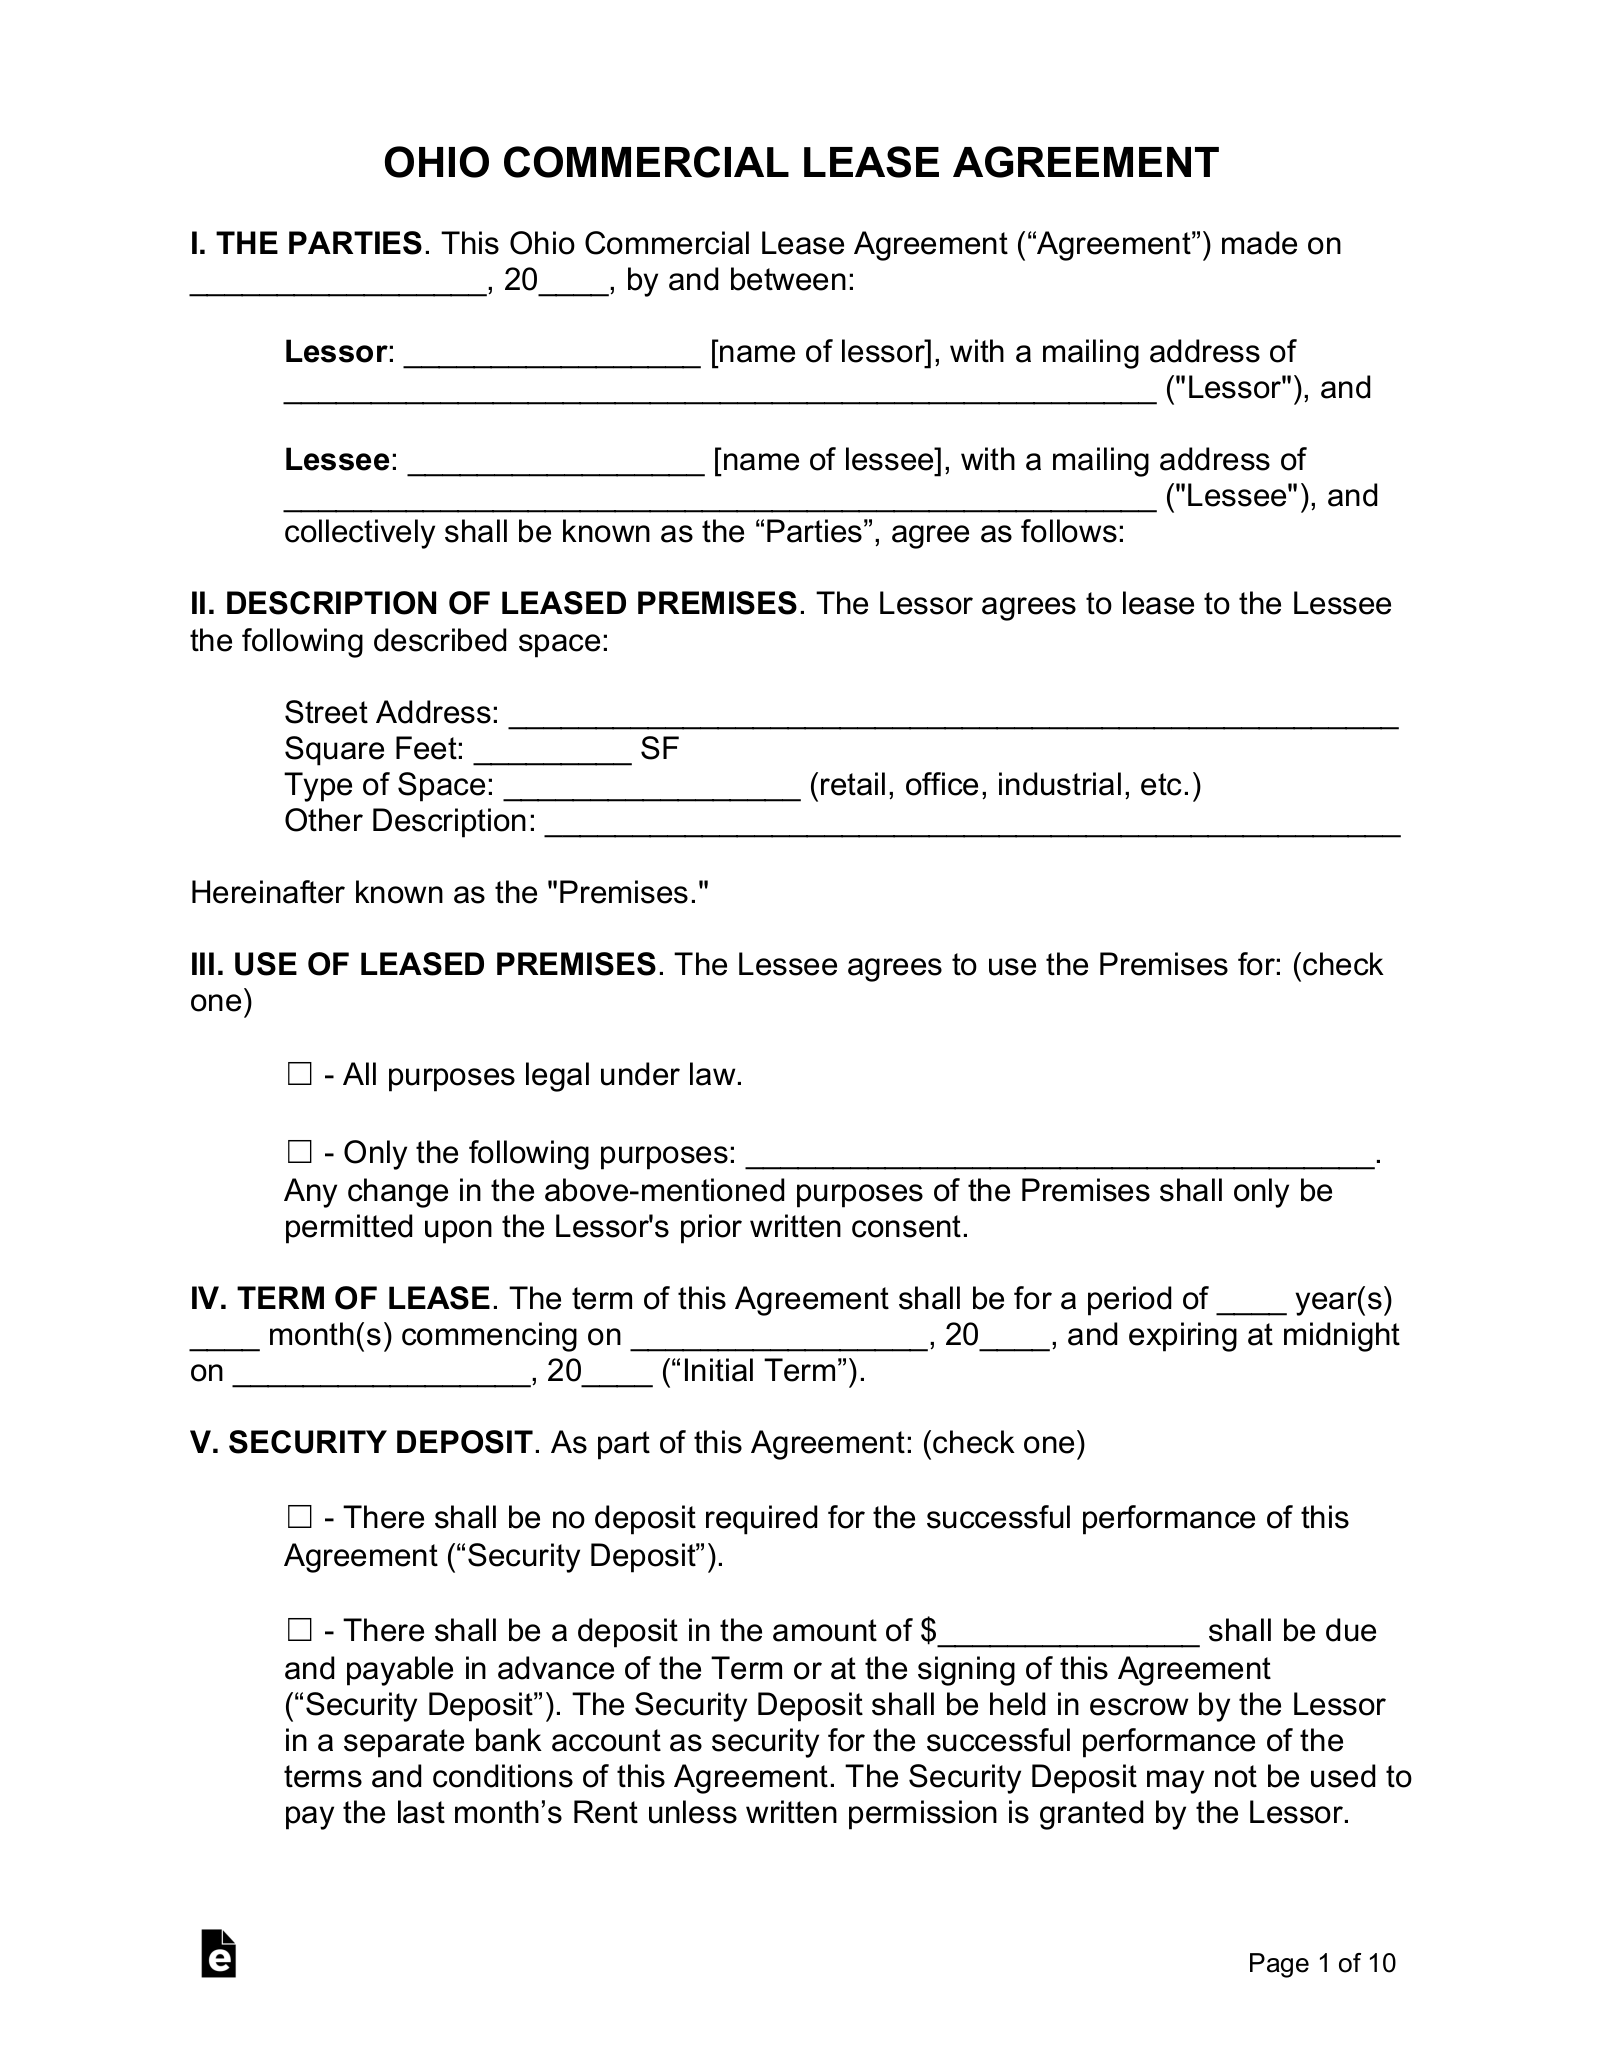 Free Ohio Commercial Lease Agreement Template Pdf Word